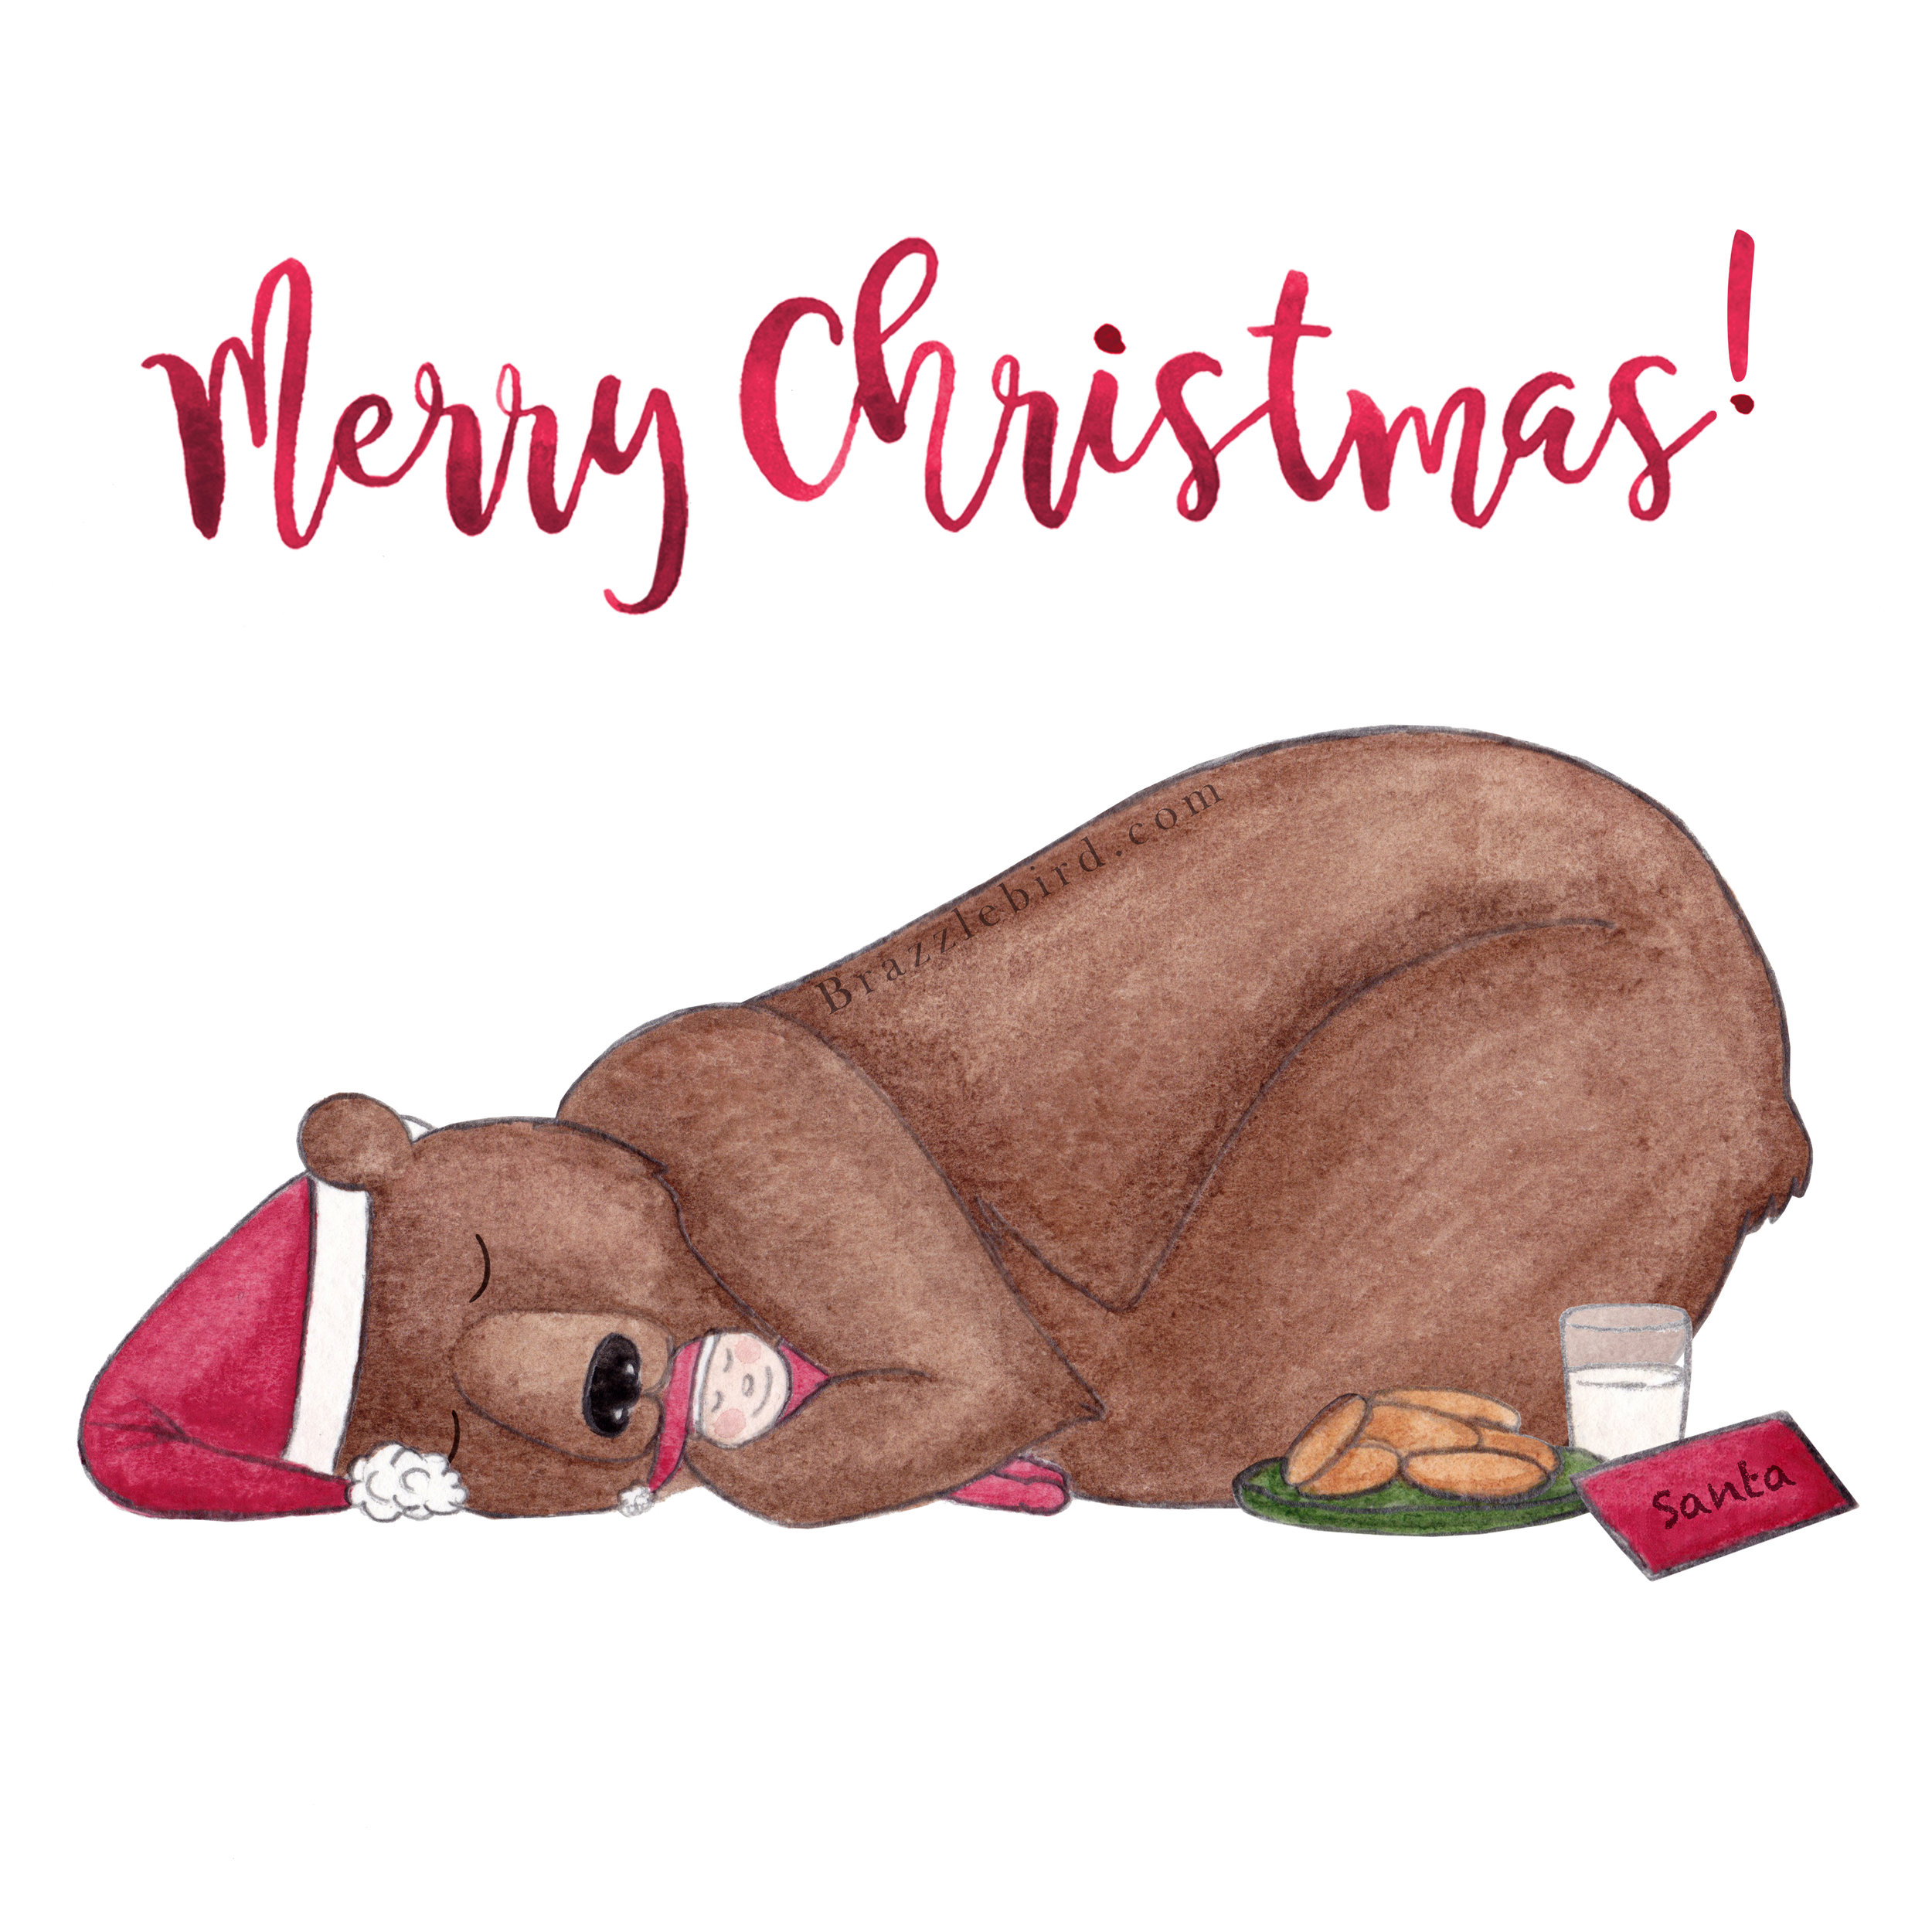 Brazzlebird - Merry Christmas Hibernating Grizzly Bear Cuddling Teddy Bear